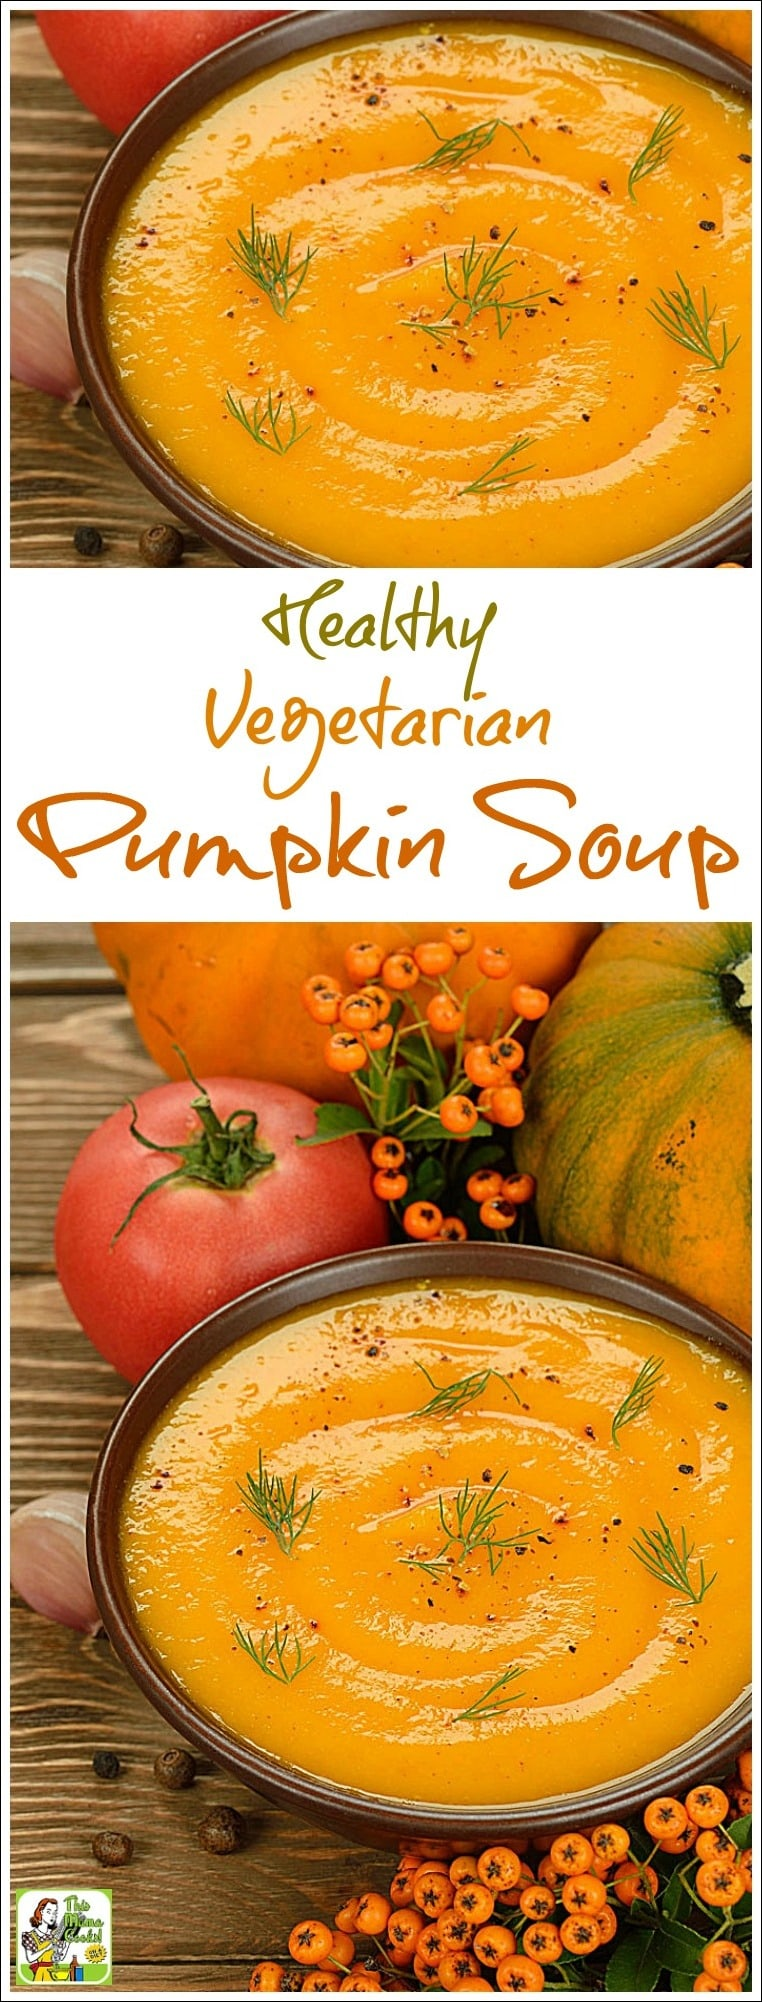 pumpkin soup recipe easy delicious best pumpkin 2017